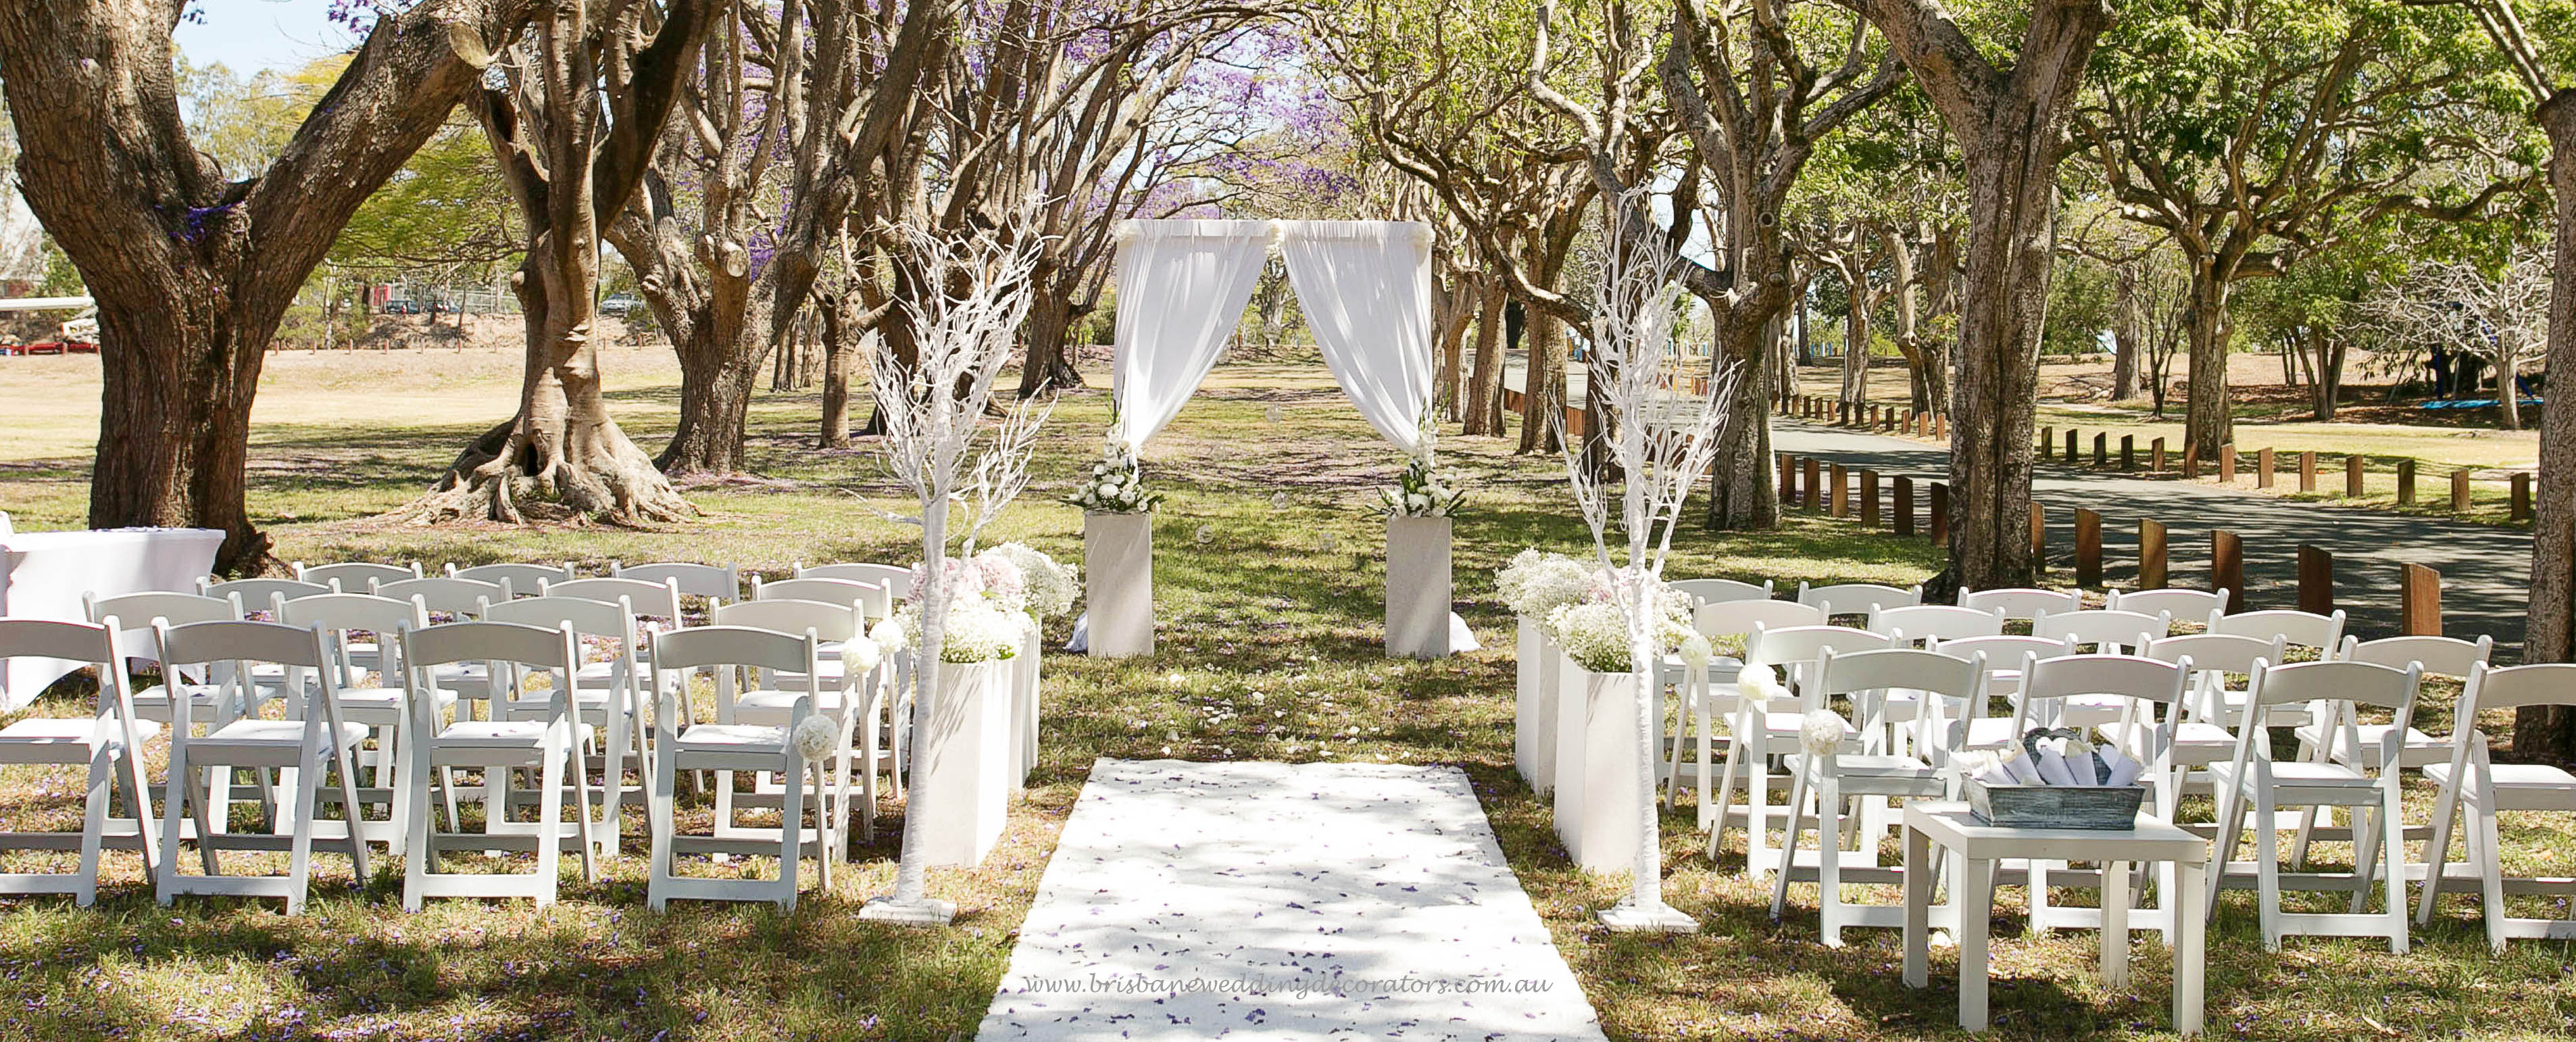 Brisbane Wedding Ceremony Set Up By Decorators